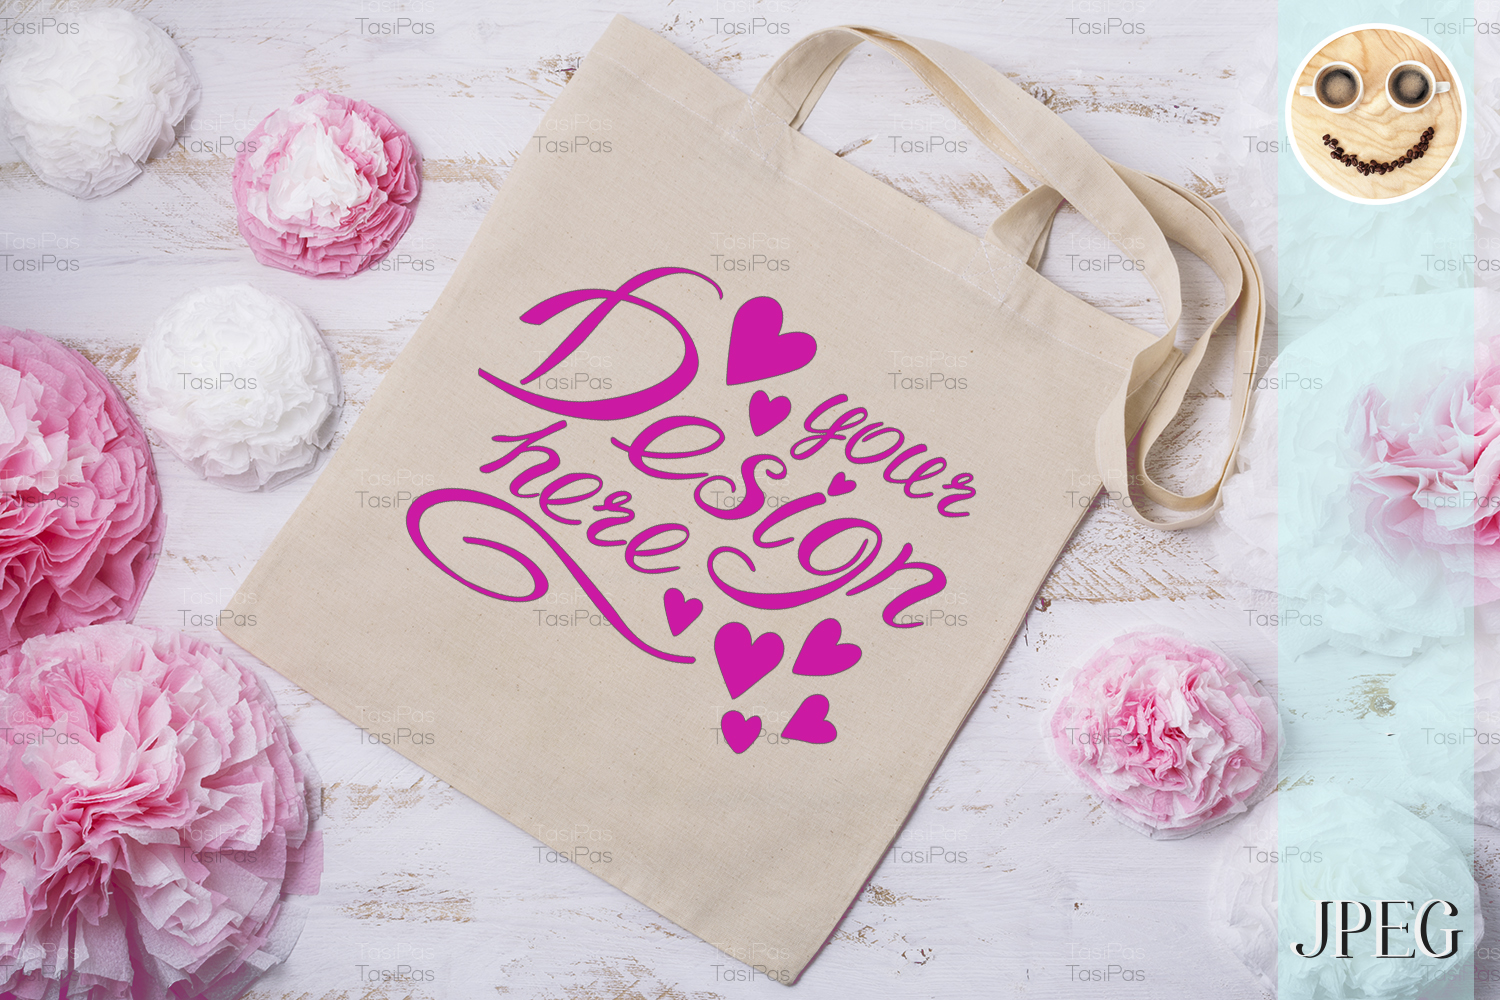 Download Free Tote Bag Mockup With Paper Flowers Graphic By Tasipas for Cricut Explore, Silhouette and other cutting machines.